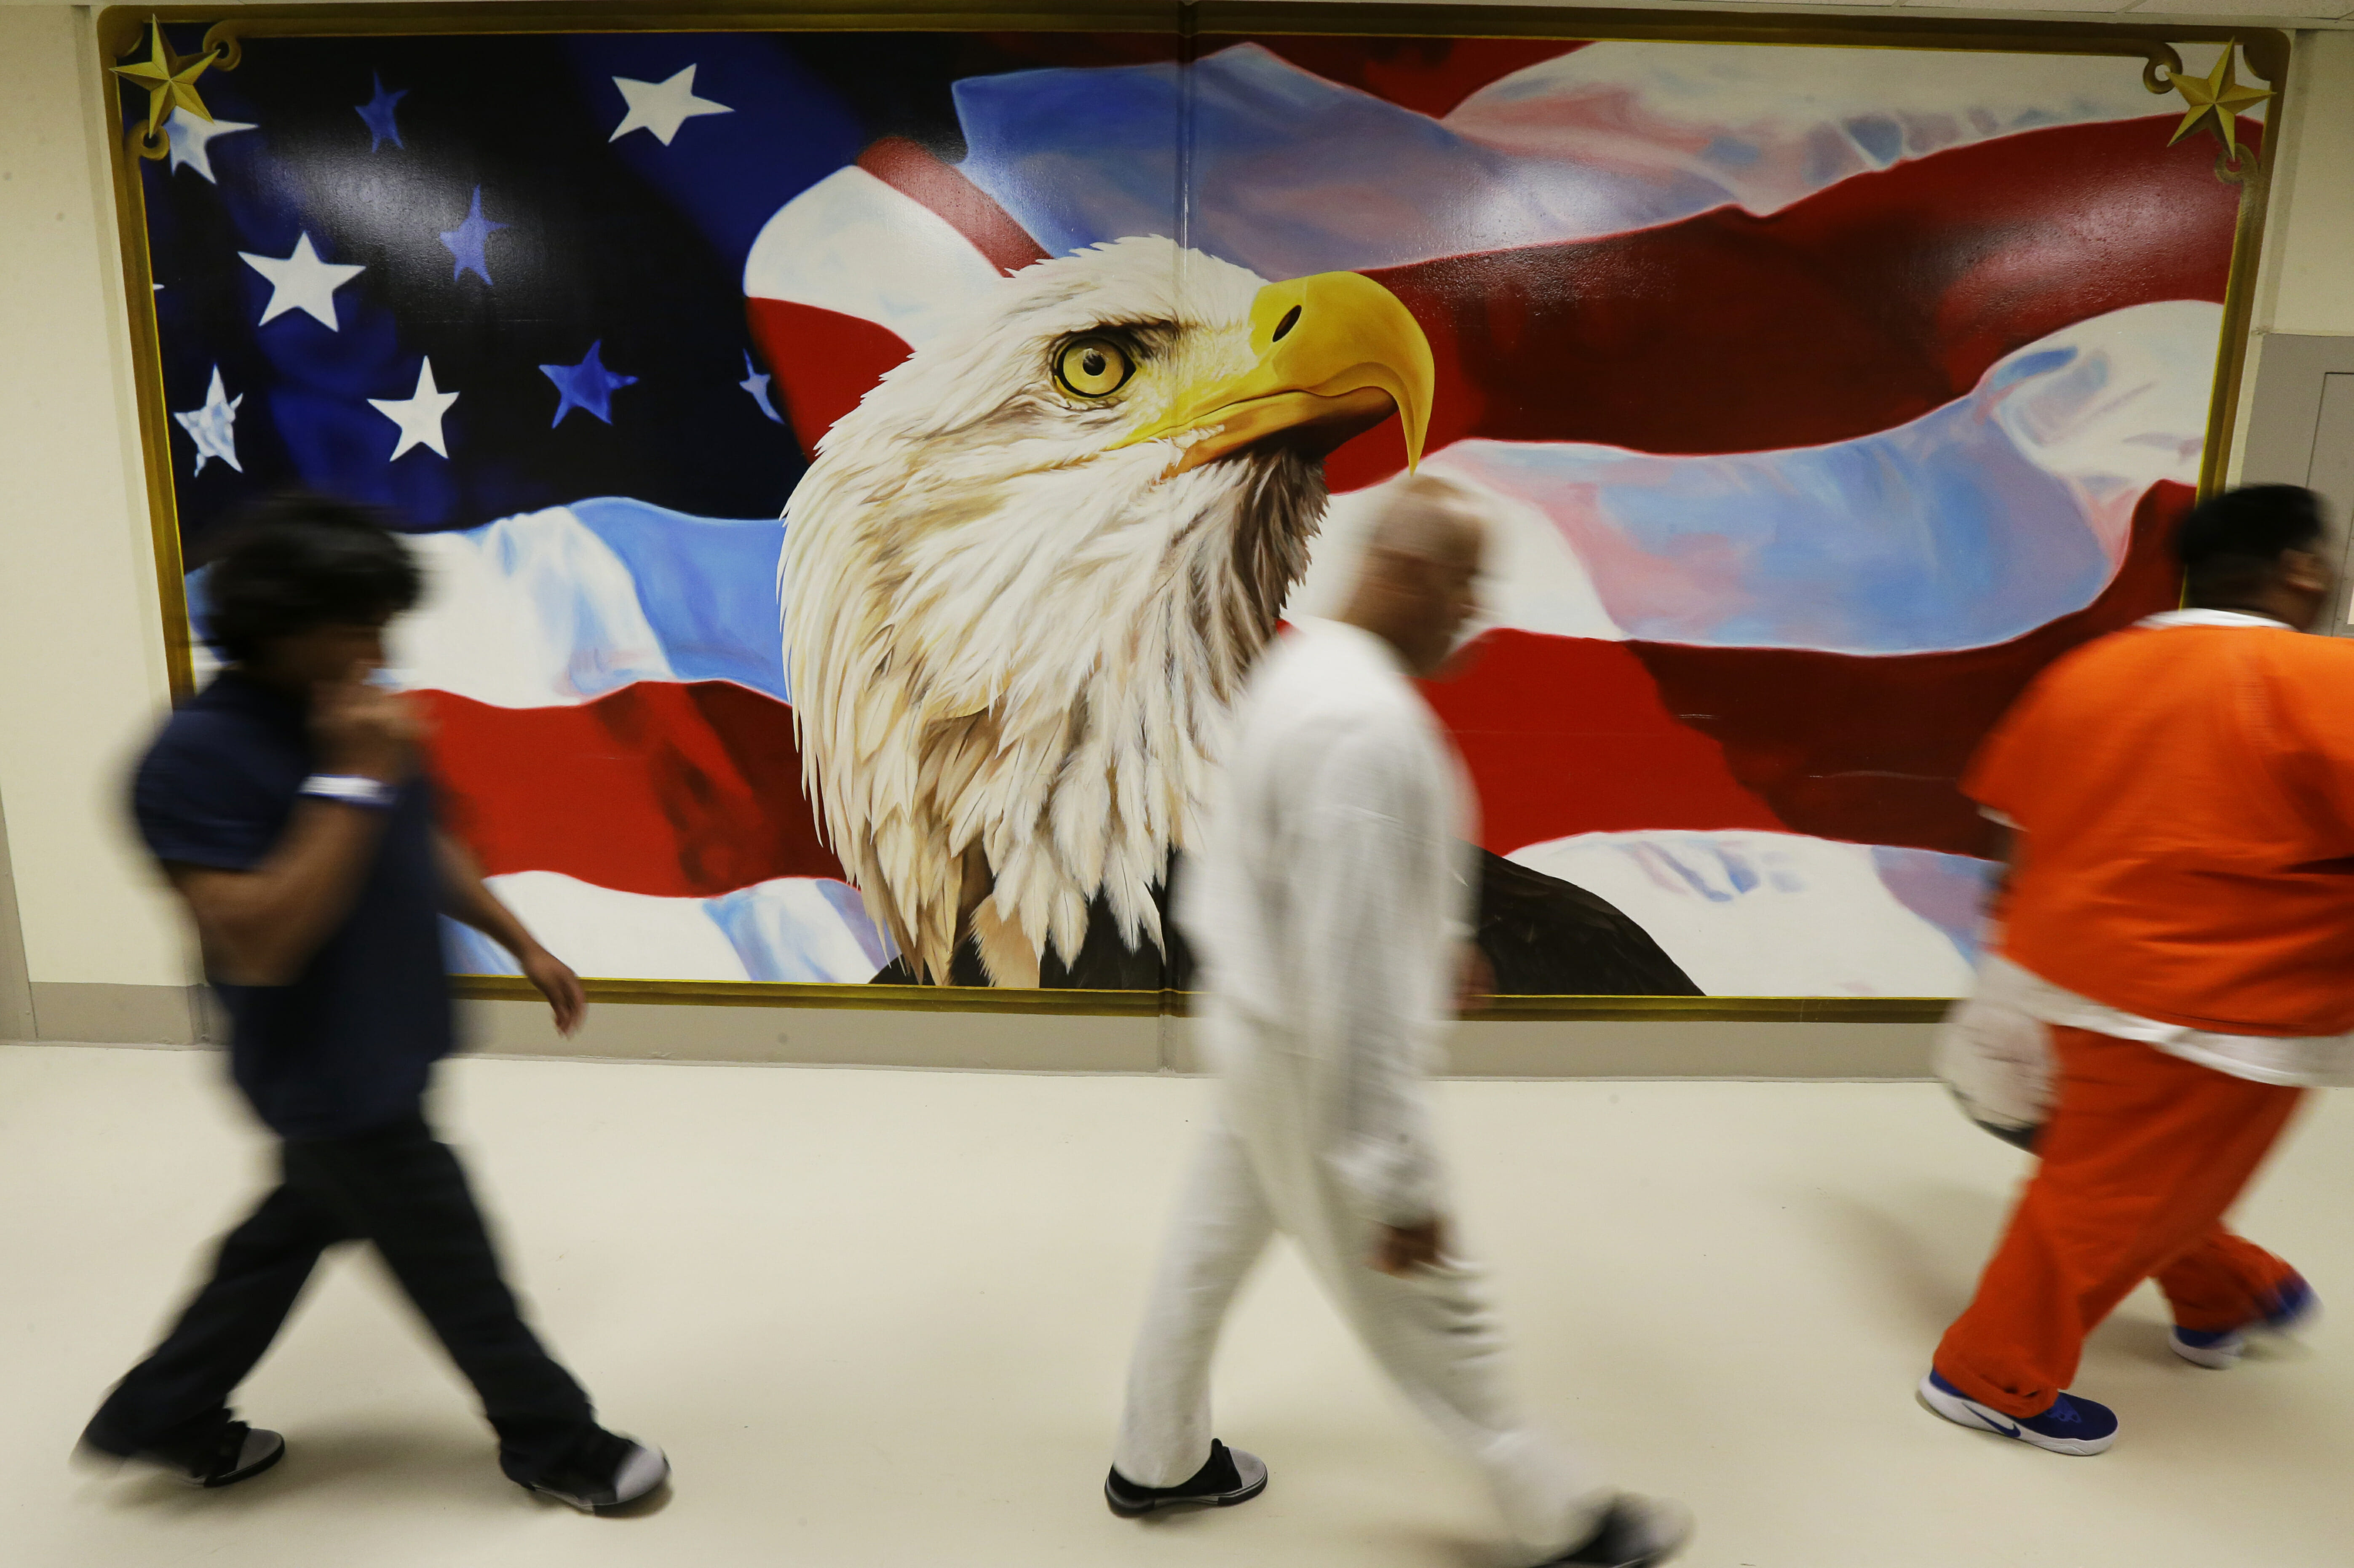 In June 21, 2017, file photo, detainees walk past a mural in the Northwest Detention Center in Tacoma, Washington, during a media tour of the facility.